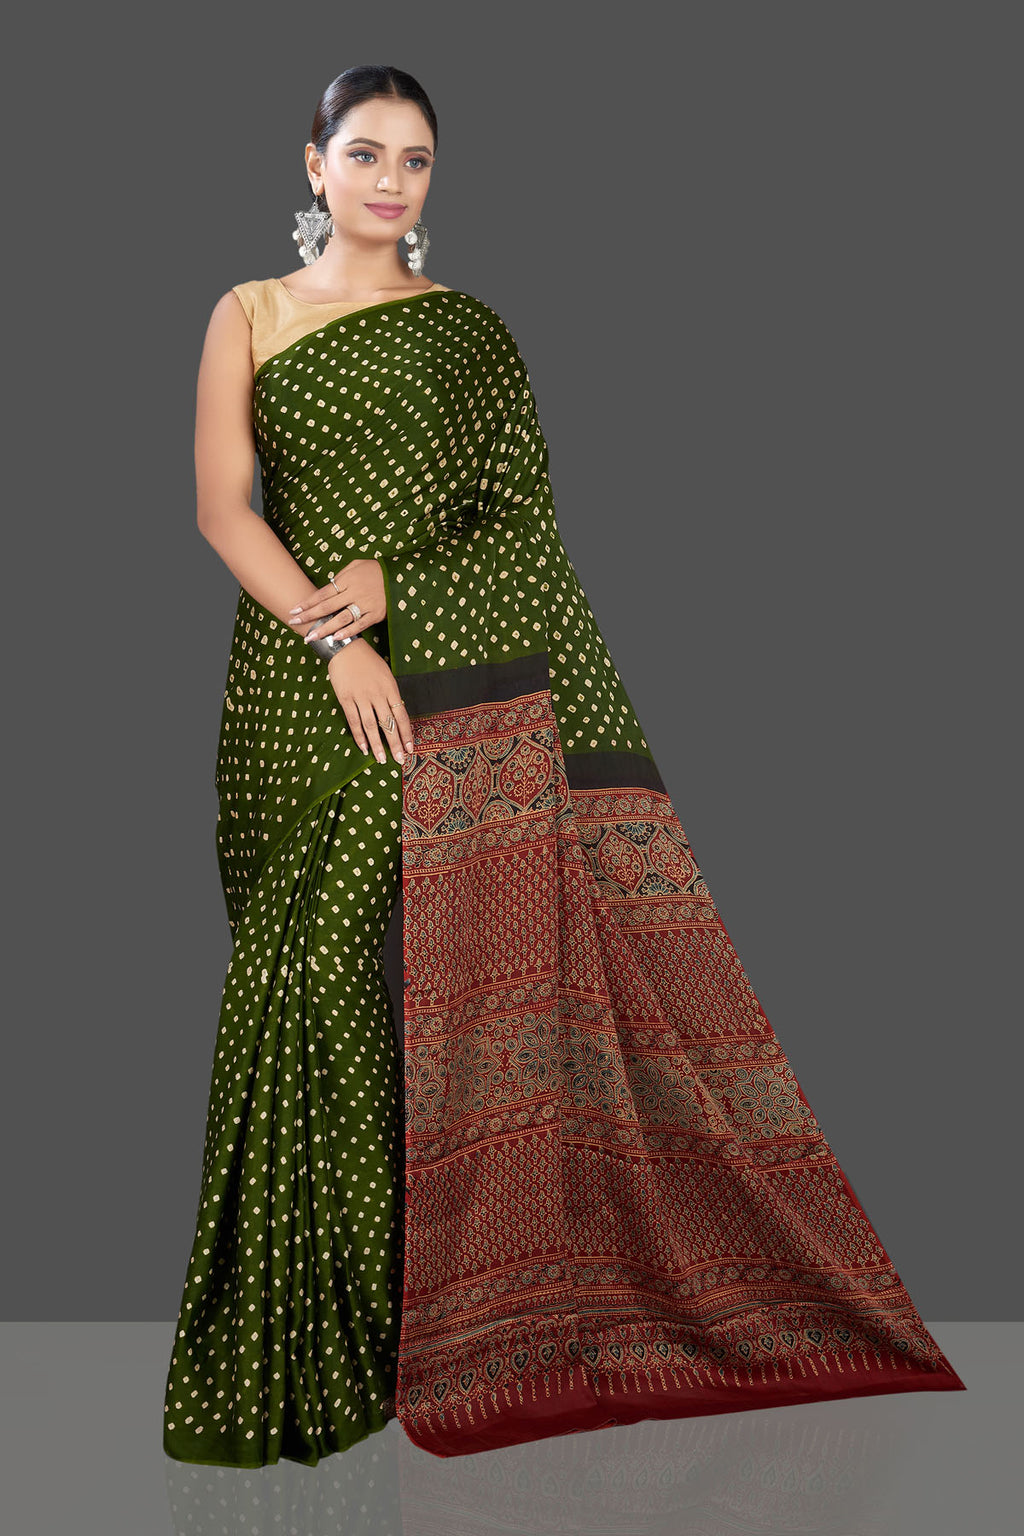 Buy gorgeous green Bandhej print modal silk sari online in USA with red Ajrakh pallu. Look beautiful at weddings and parties with exquisite designer sarees, handwoven saris, pure silk sarees, embroidered sarees, printed sarees from Pure Elegance Indian fashion boutique in USA.-full view